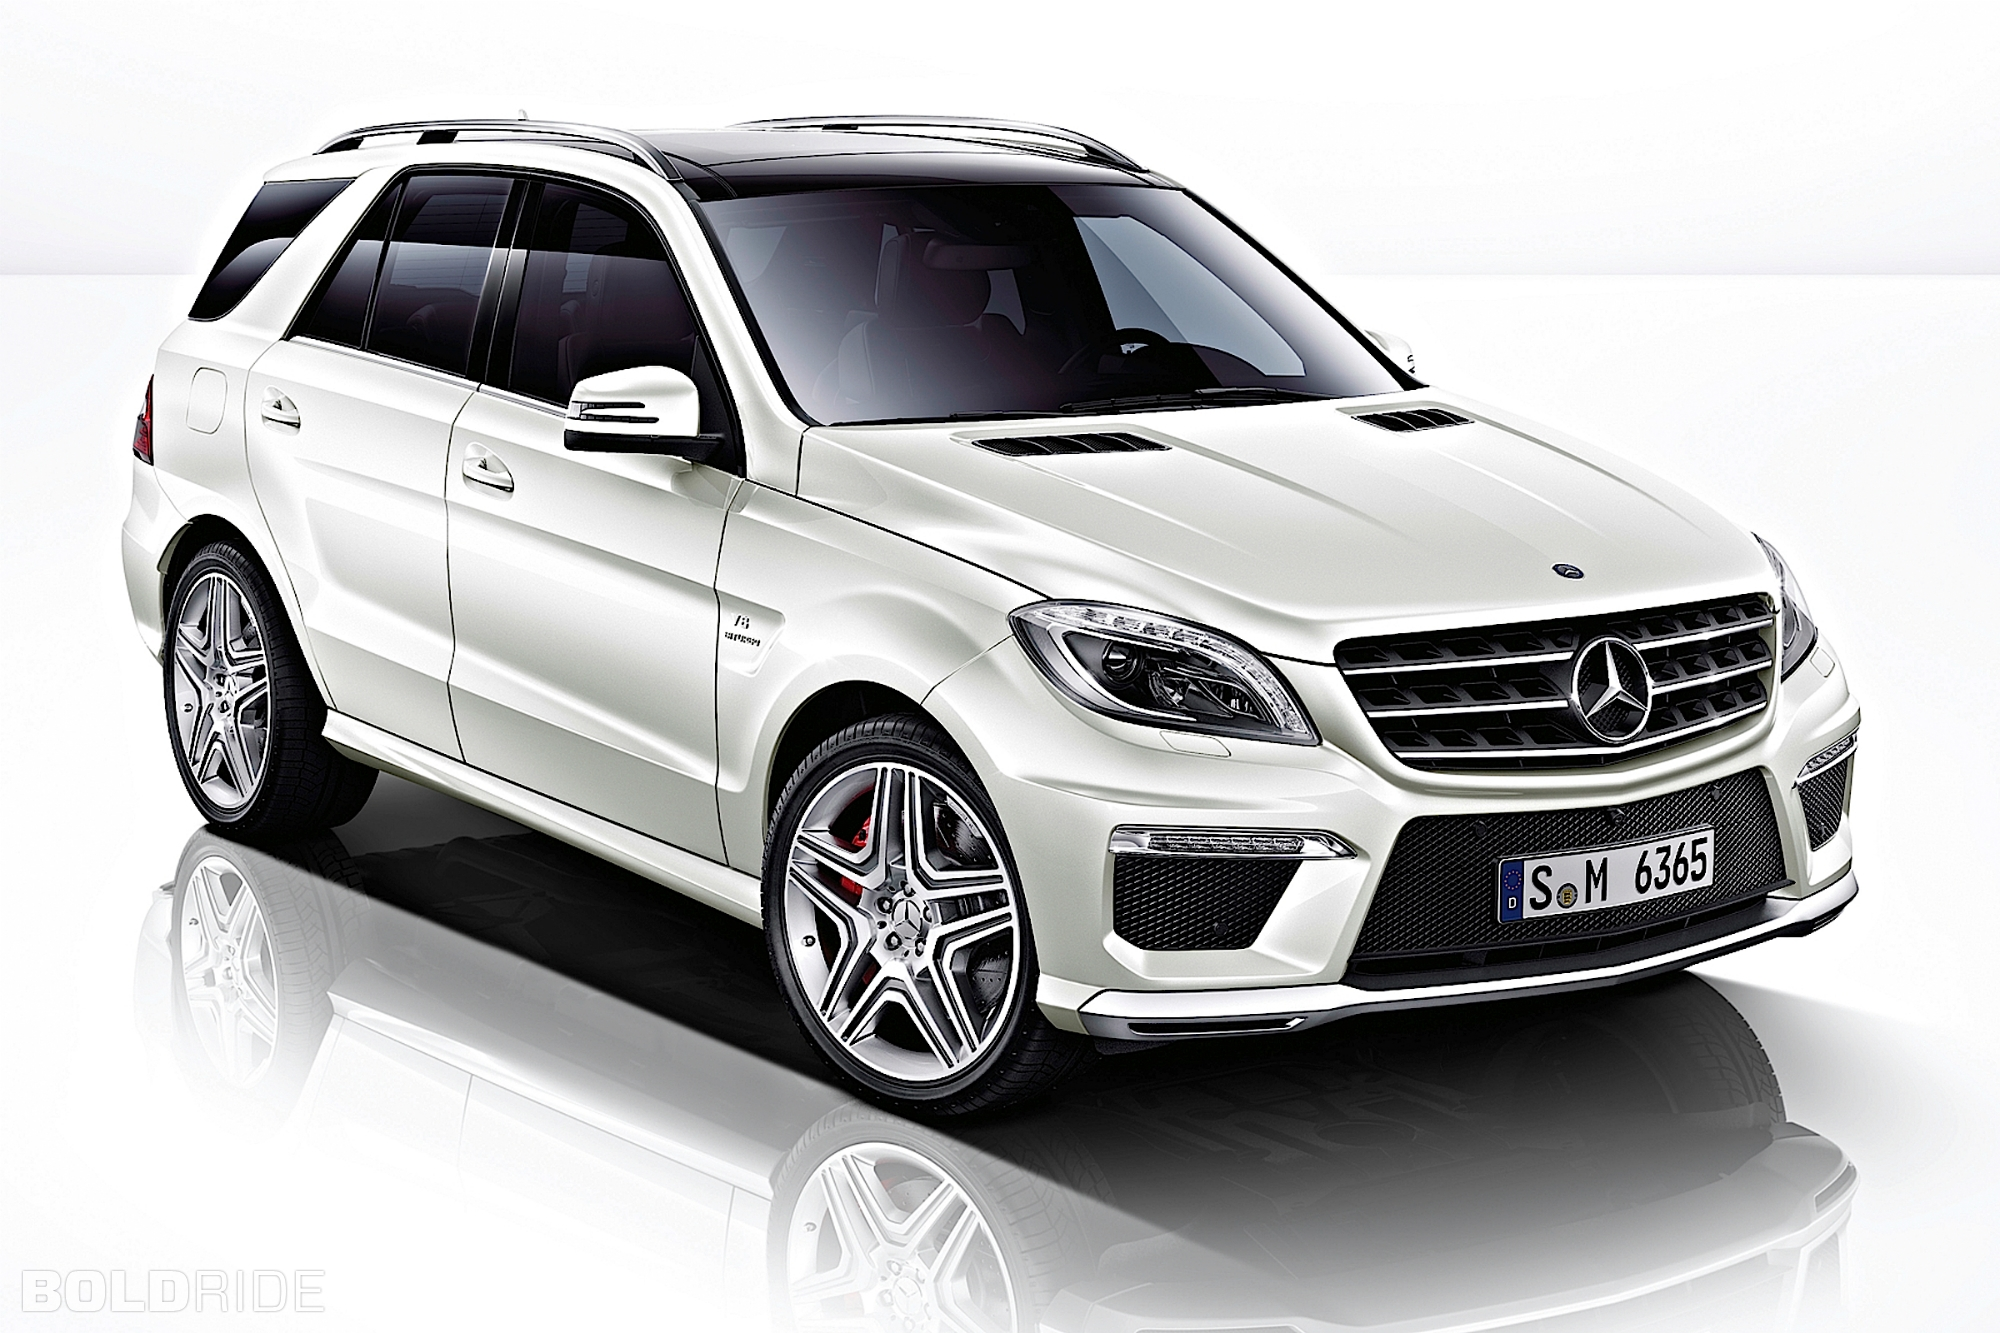 2018 mercedes benz ml63 amg car photos catalog 2018 for Mercedes benz 2018 amg